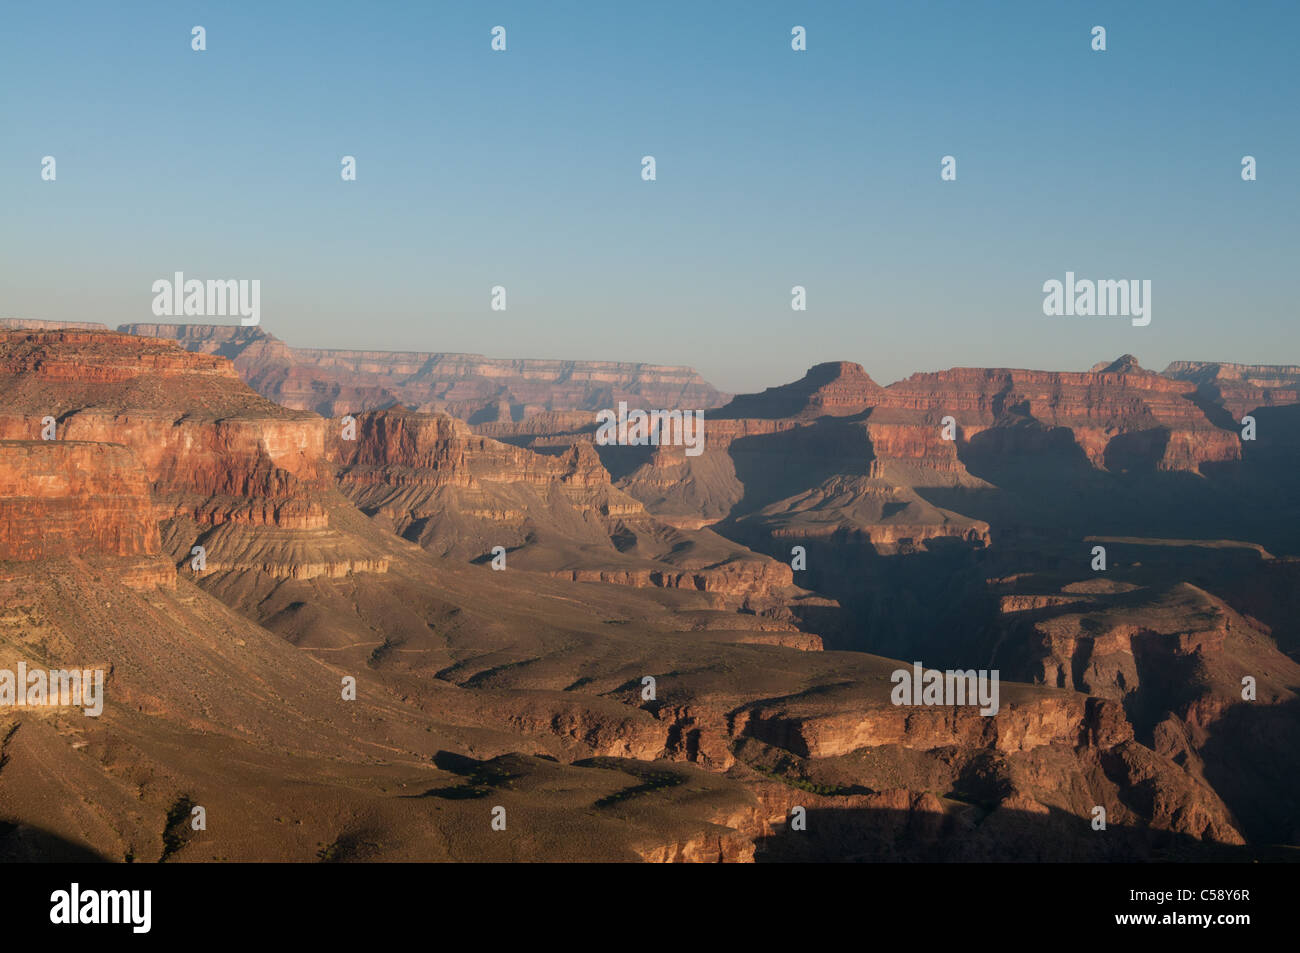 The sun rises over a valley on the South Kaibab Trail in Grand Canyon National Park - Stock Image